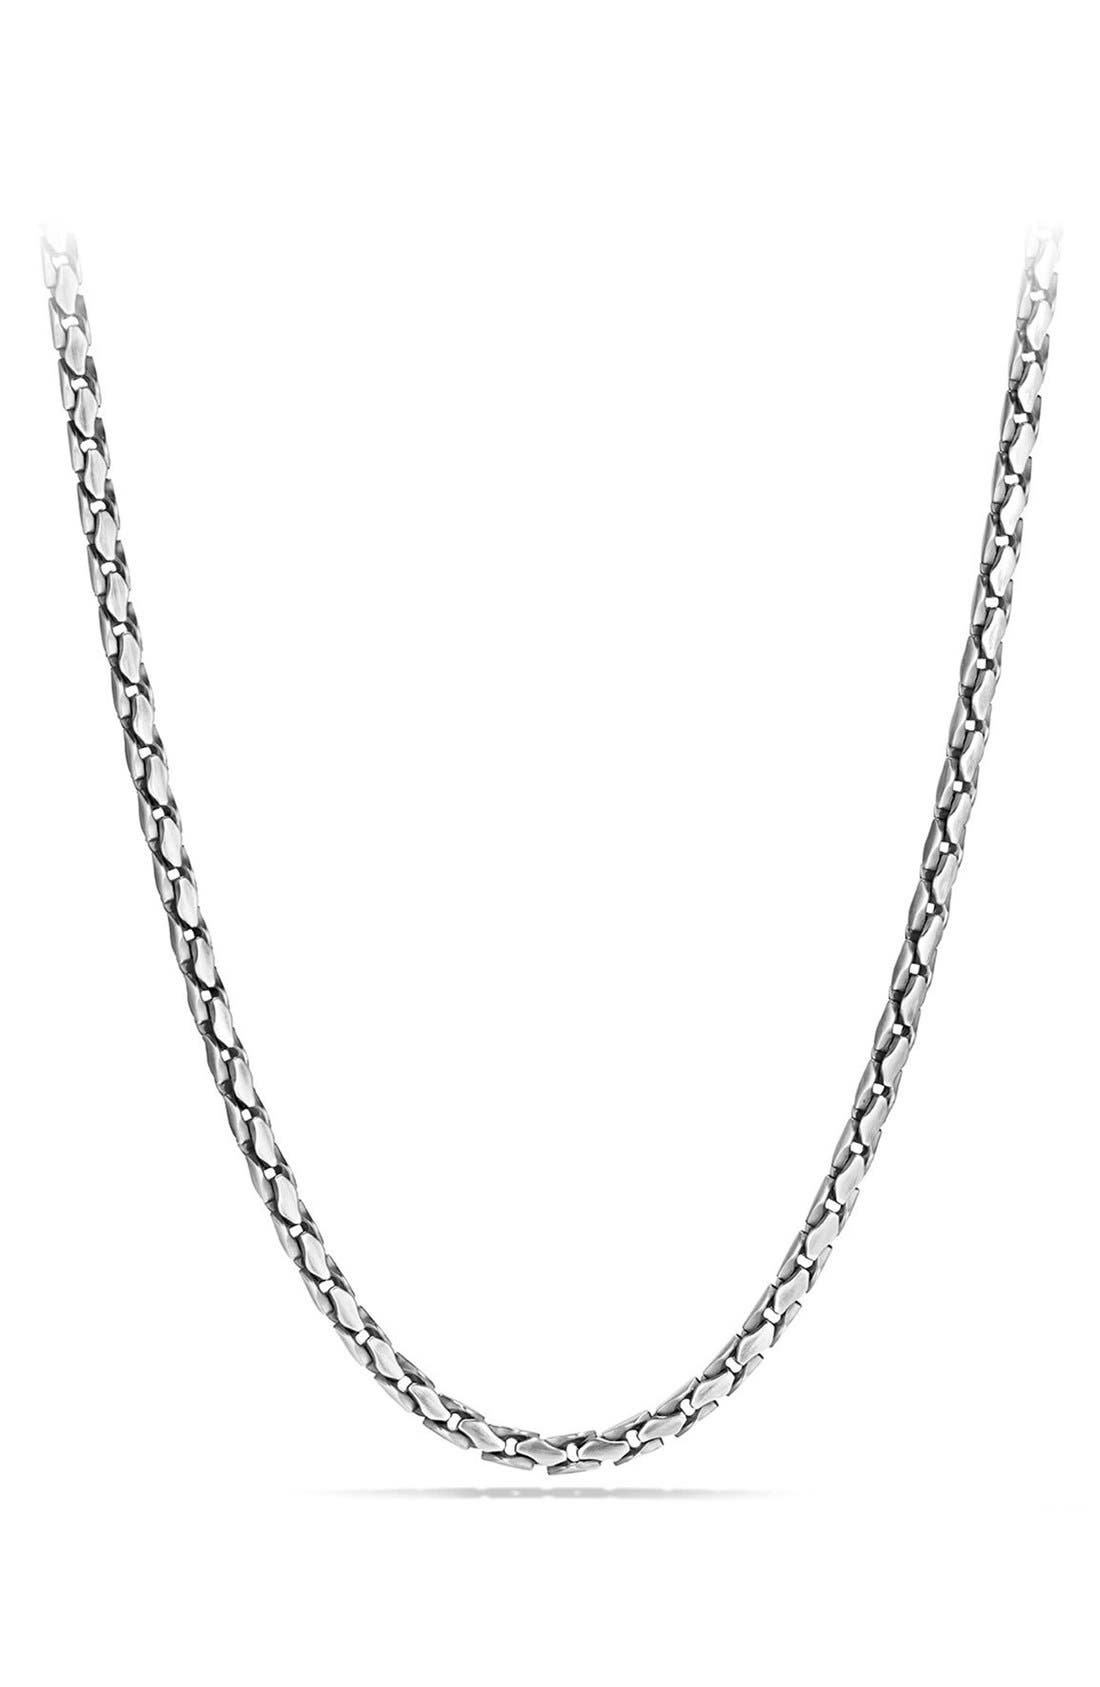 Alternate Image 1 Selected - David Yurman 'Chain' Small Fluted Chain Necklace, 5mm